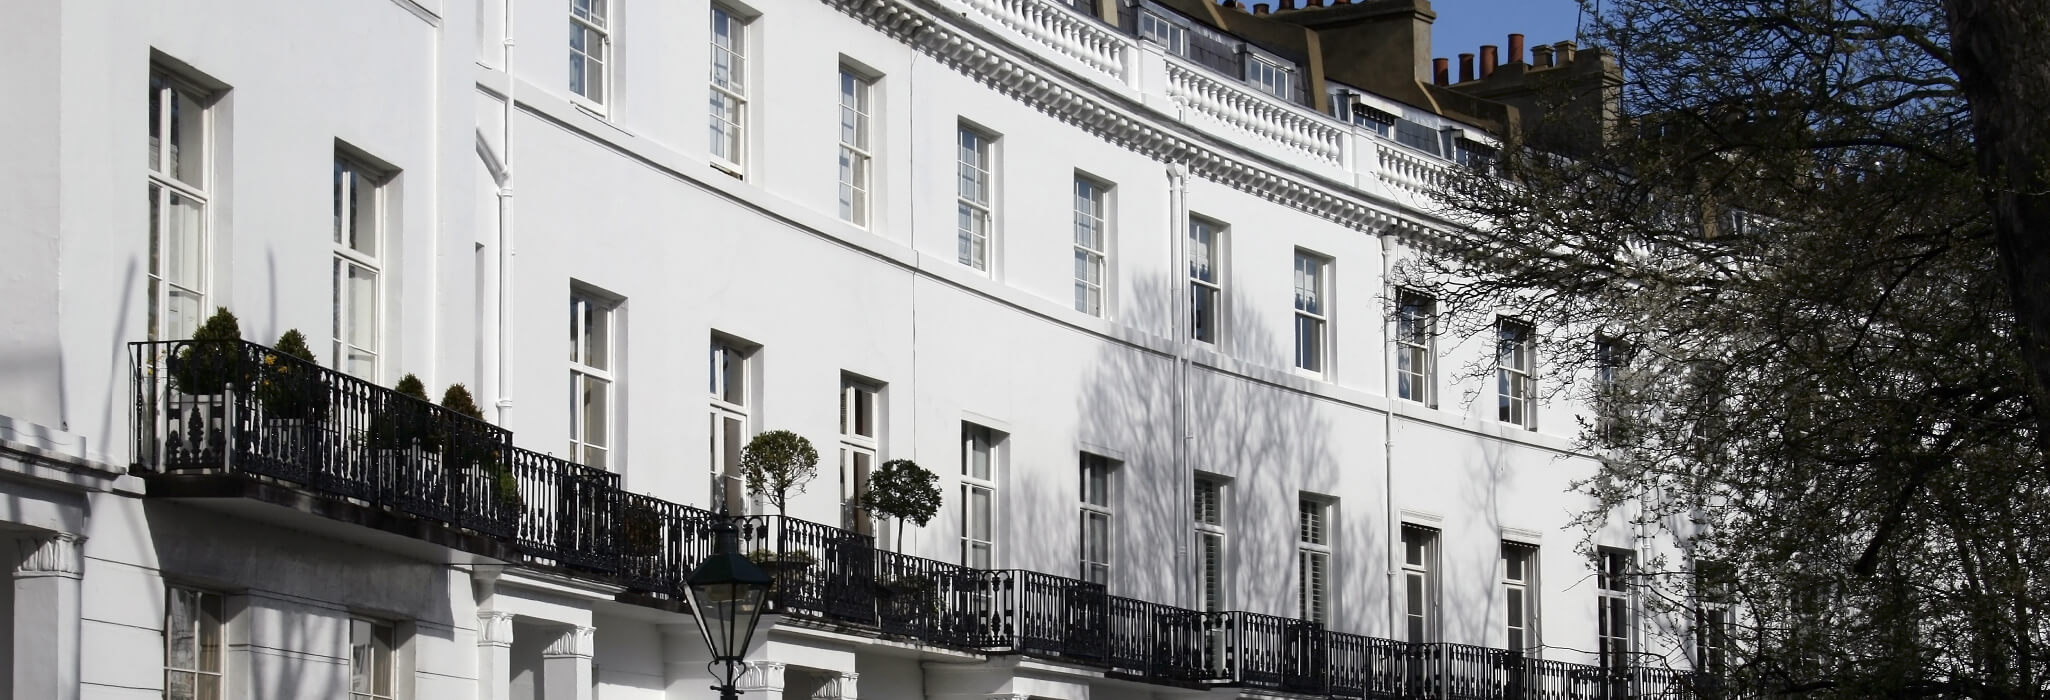 London Residential Property Market